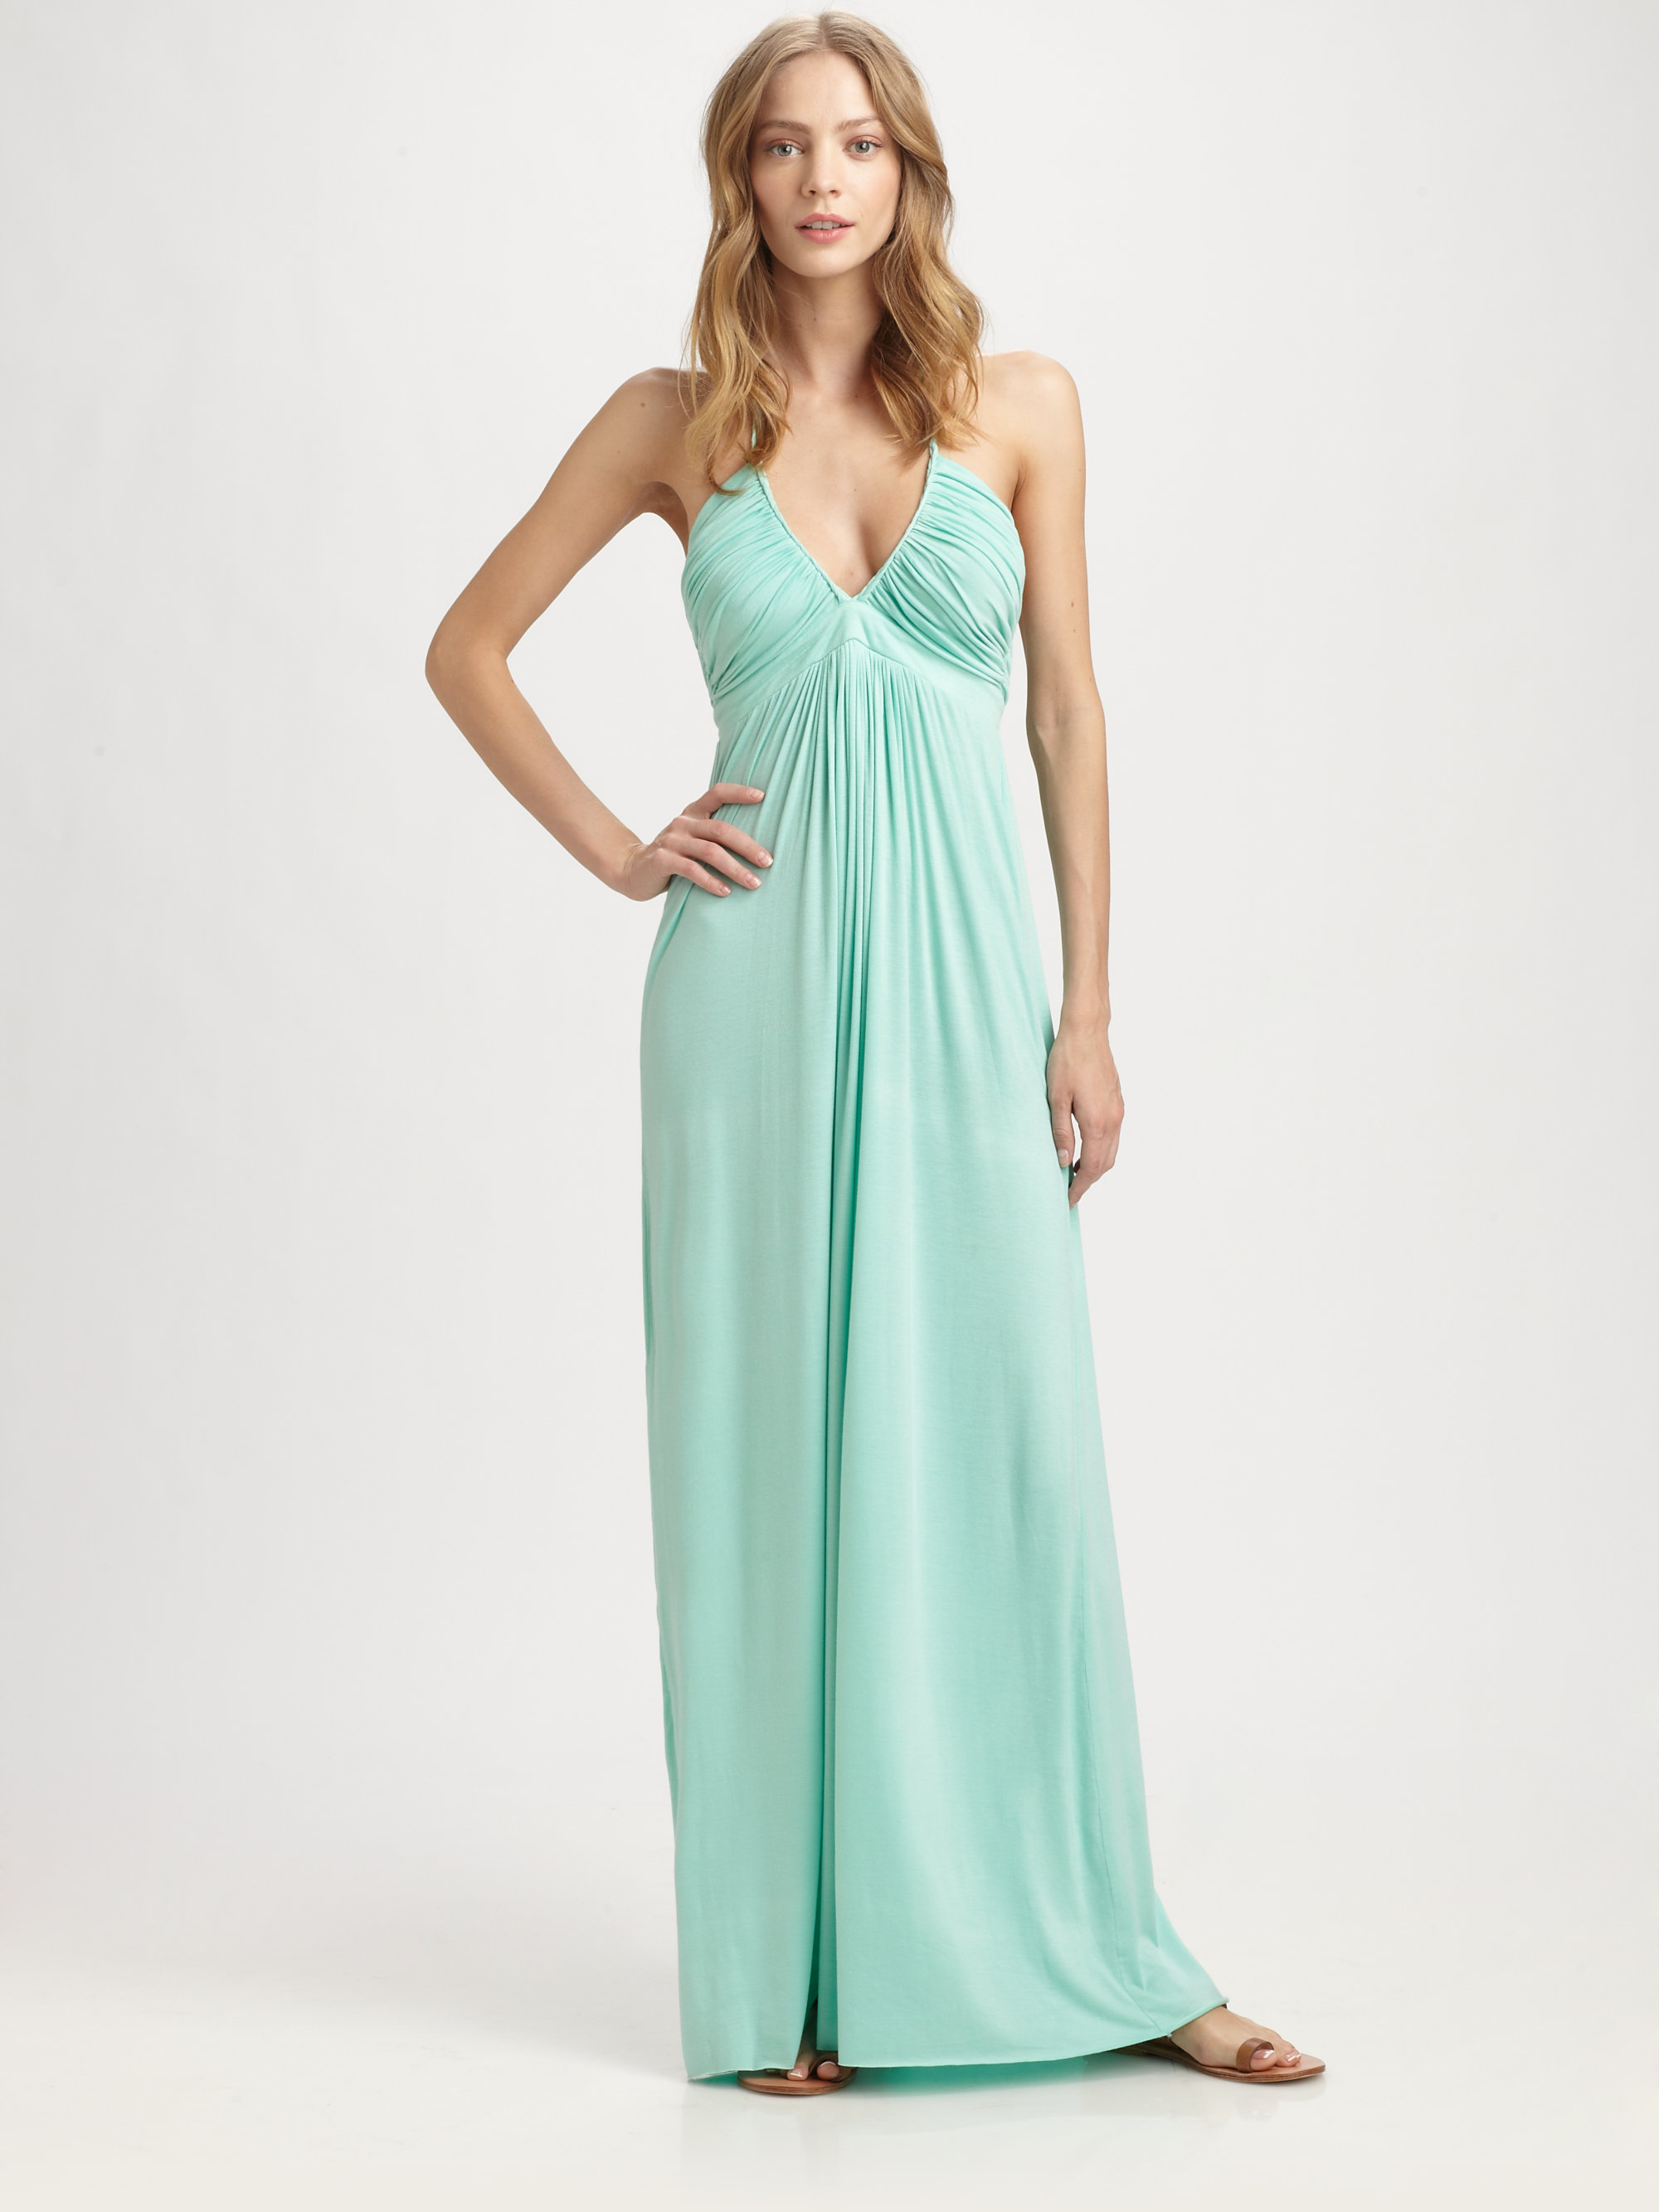 Lyst - T-Bags Ruched Halter Maxi Dress in Green